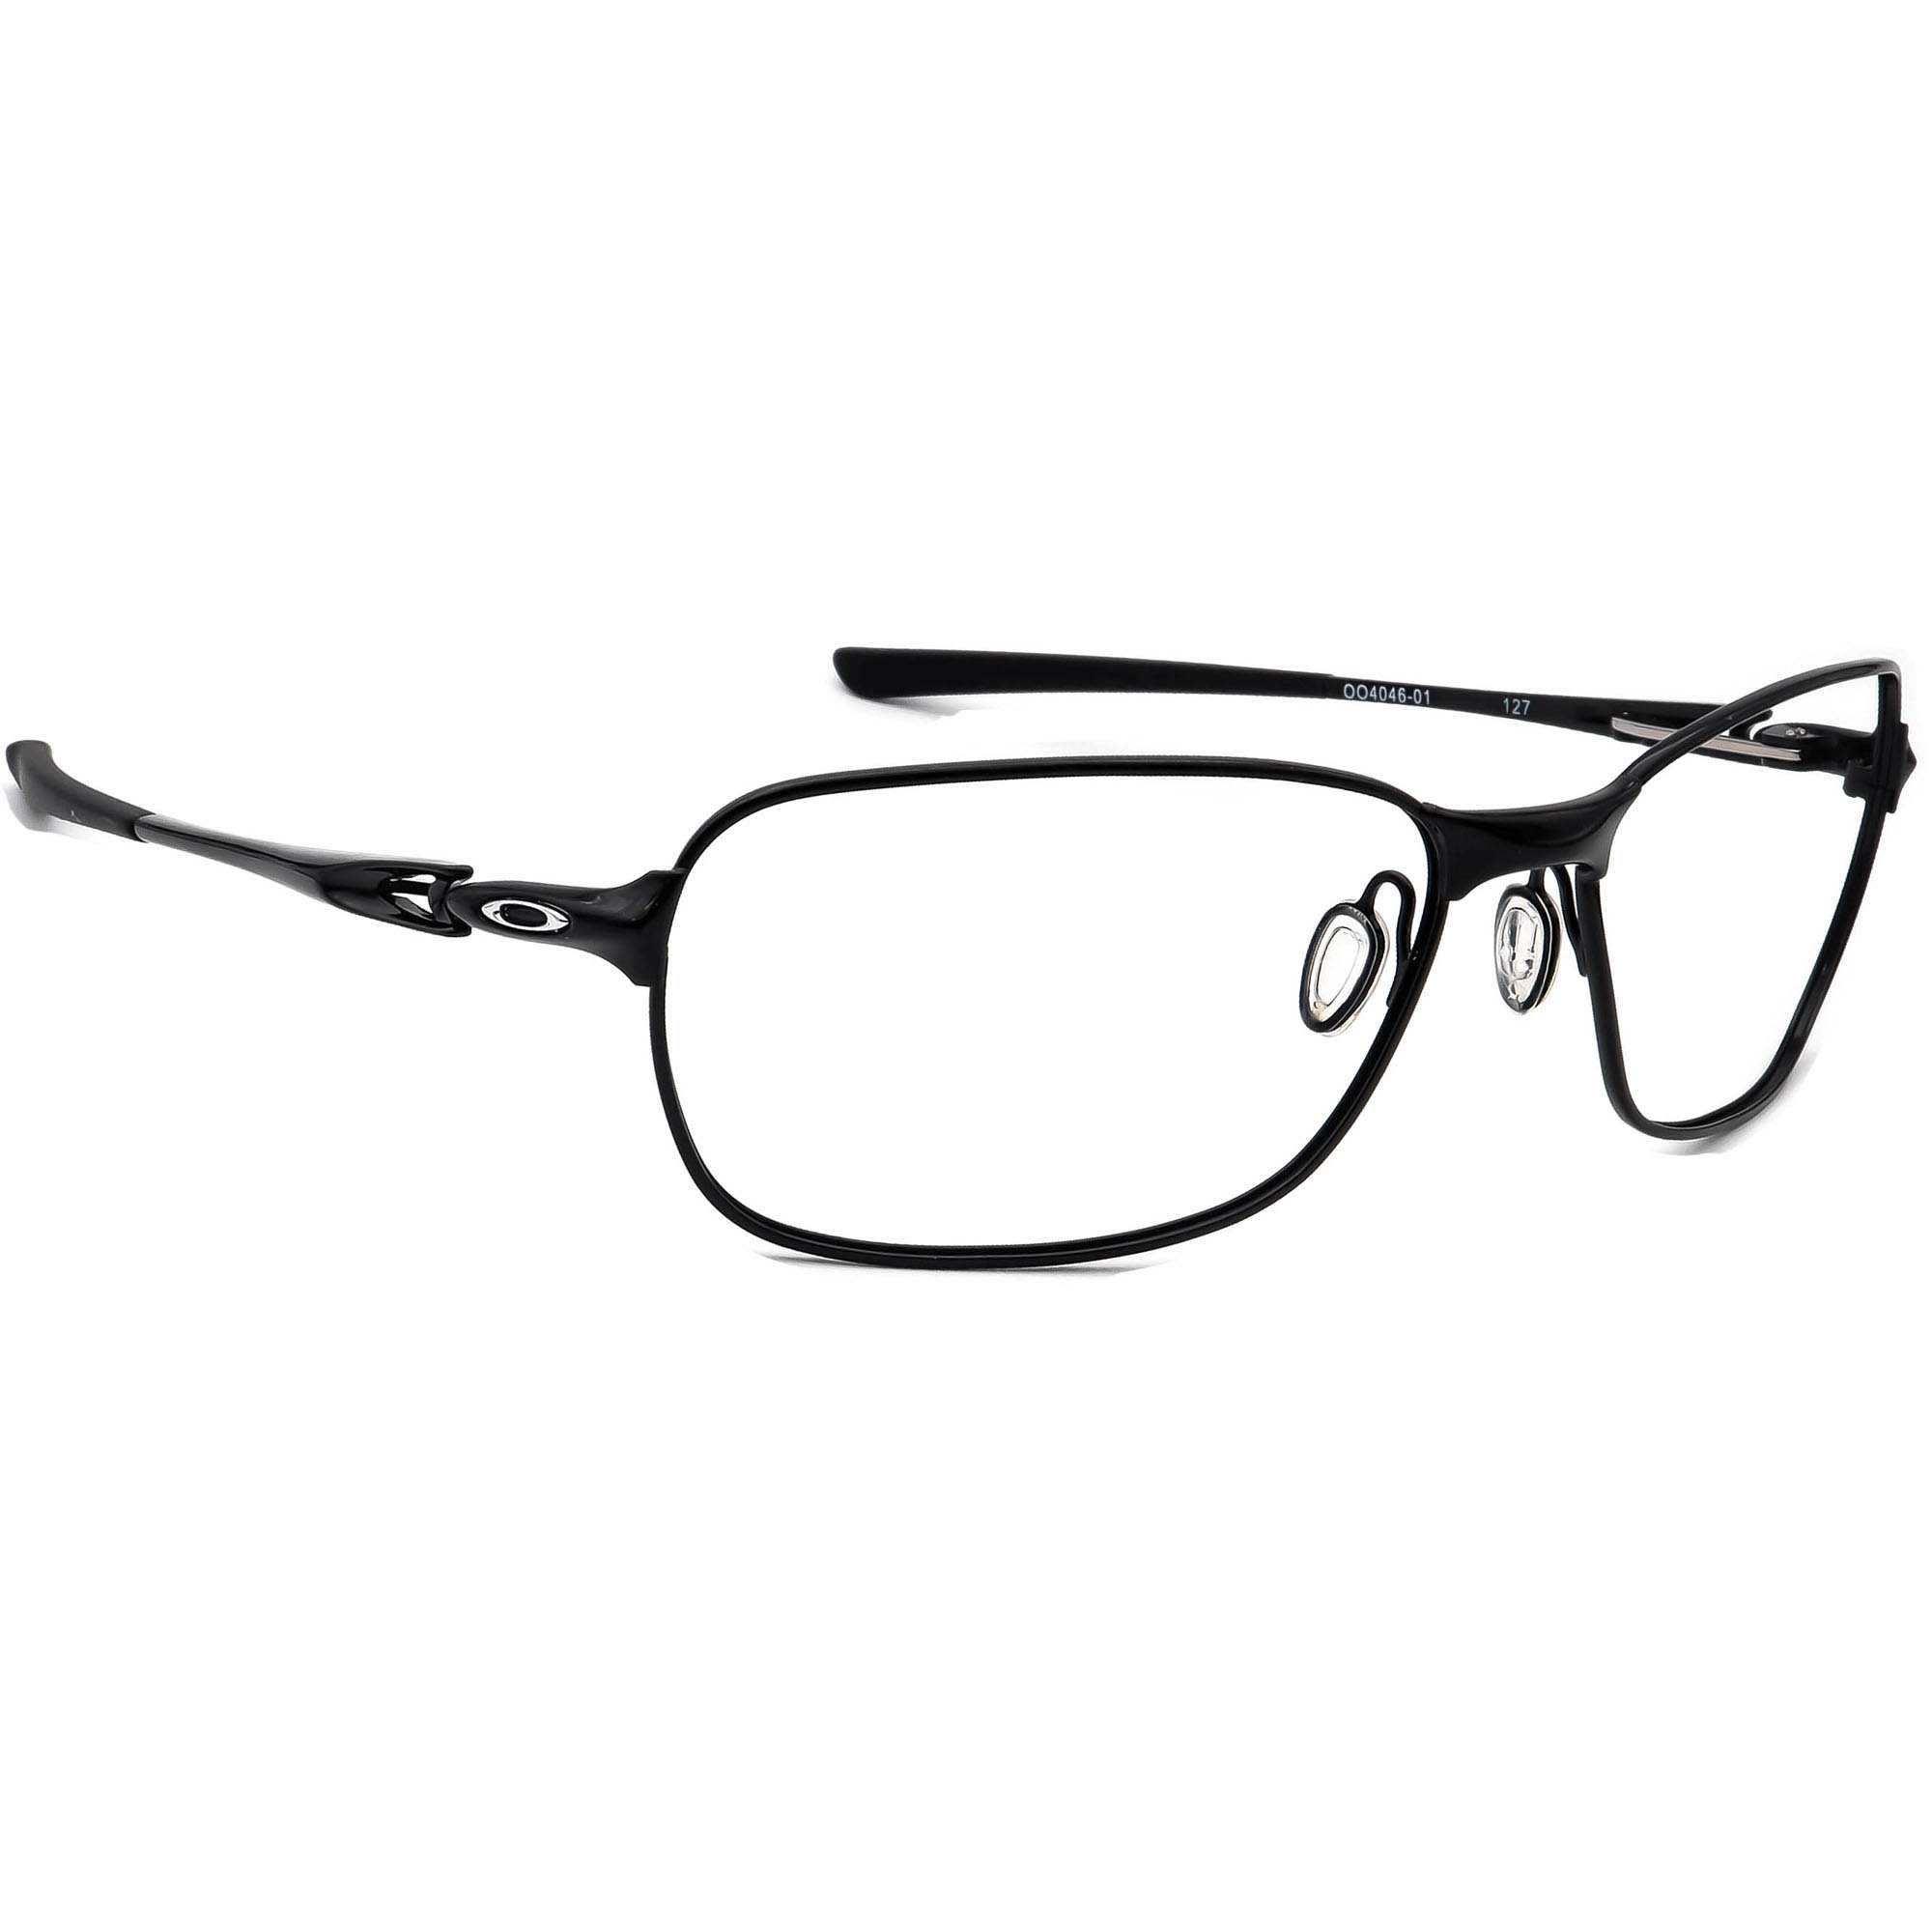 Oakley OO4046-01 C-Wire Sunglasses Frame Only